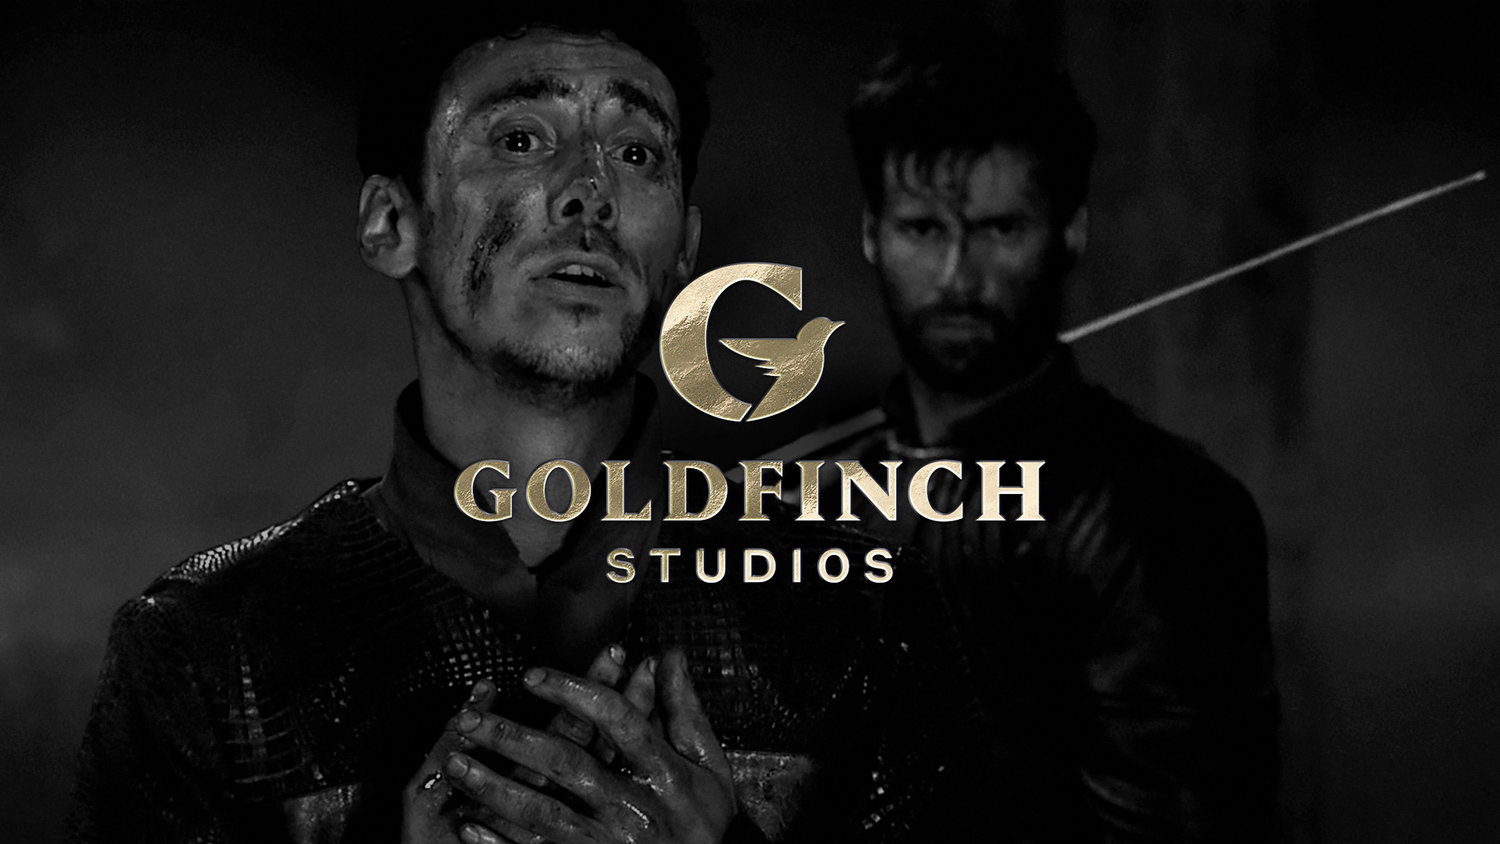 Goldfinch Studios